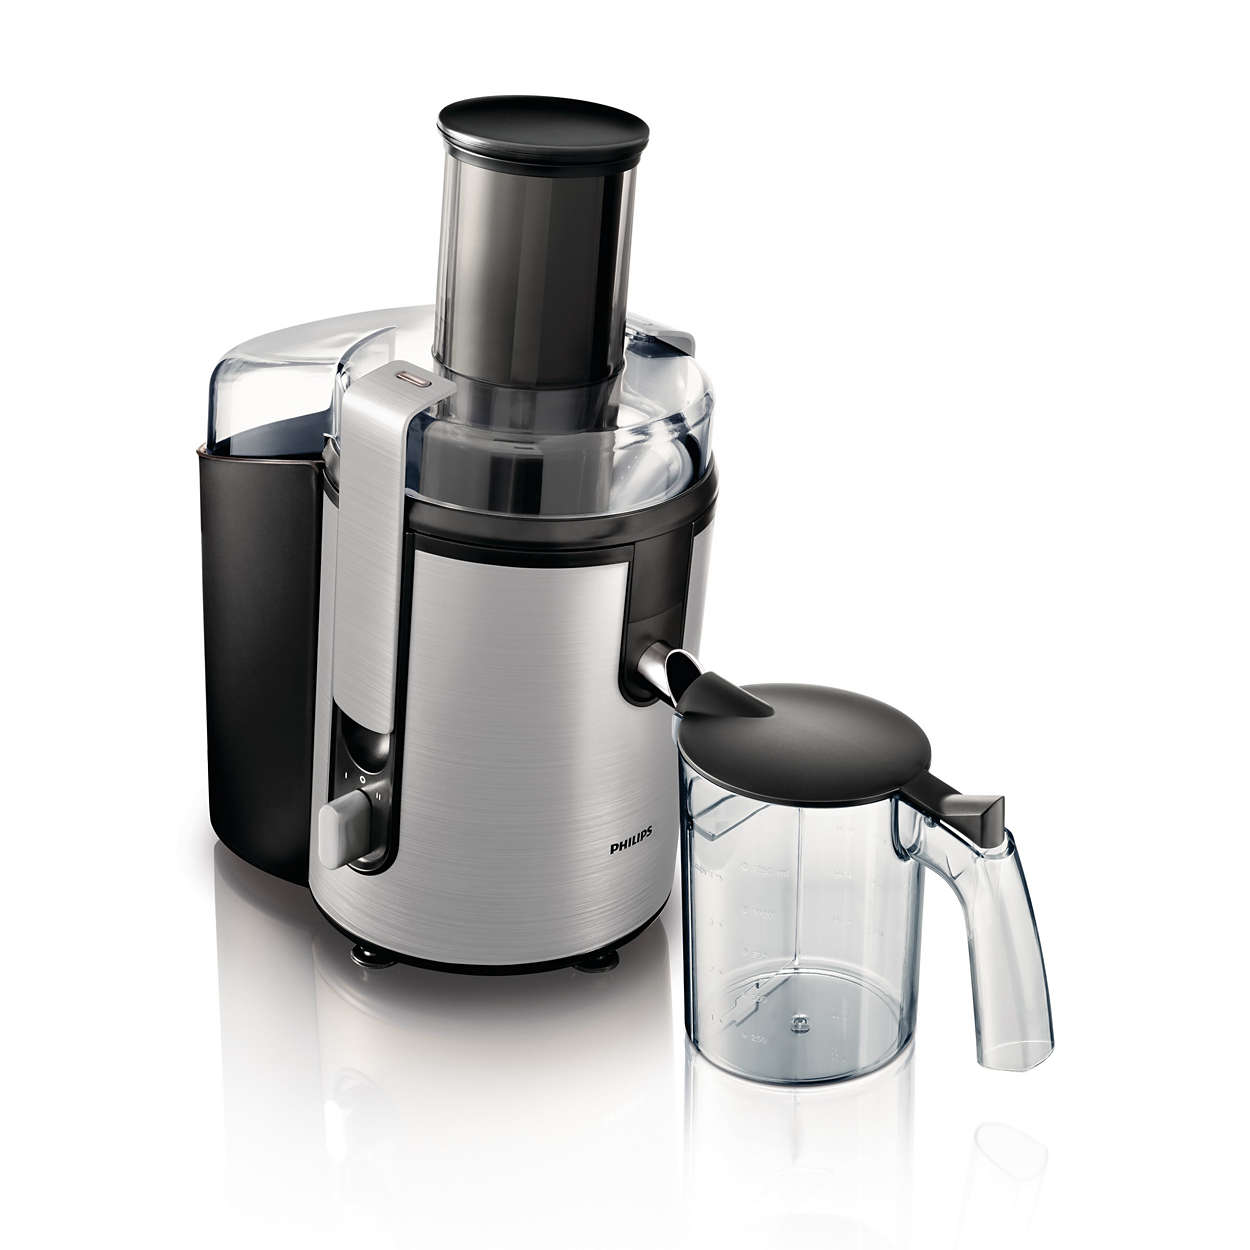 Philips Slow Juicer Media Markt : Aluminium Collection Juicer HR1866/00 Philips